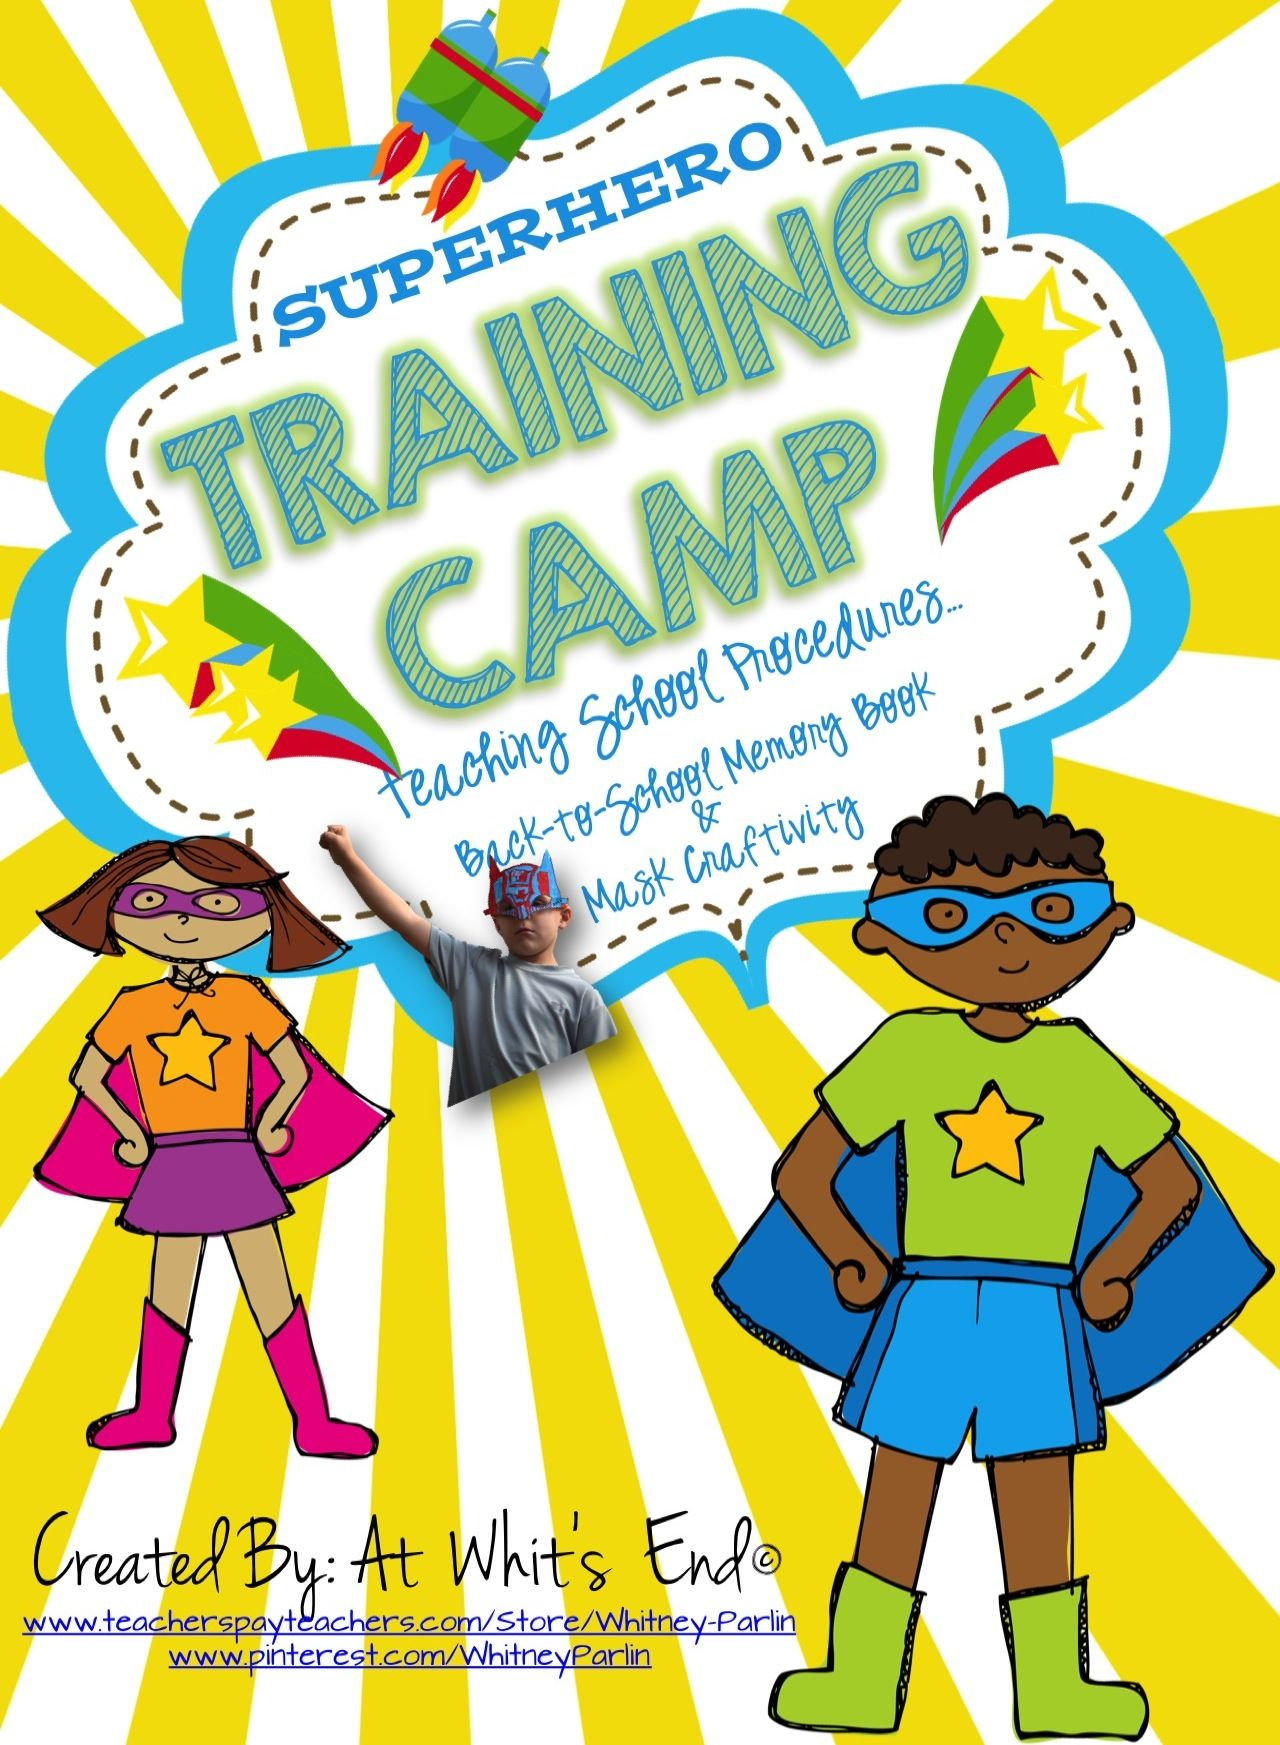 Teaching Rules And Student Expectations Superhero Training Camp